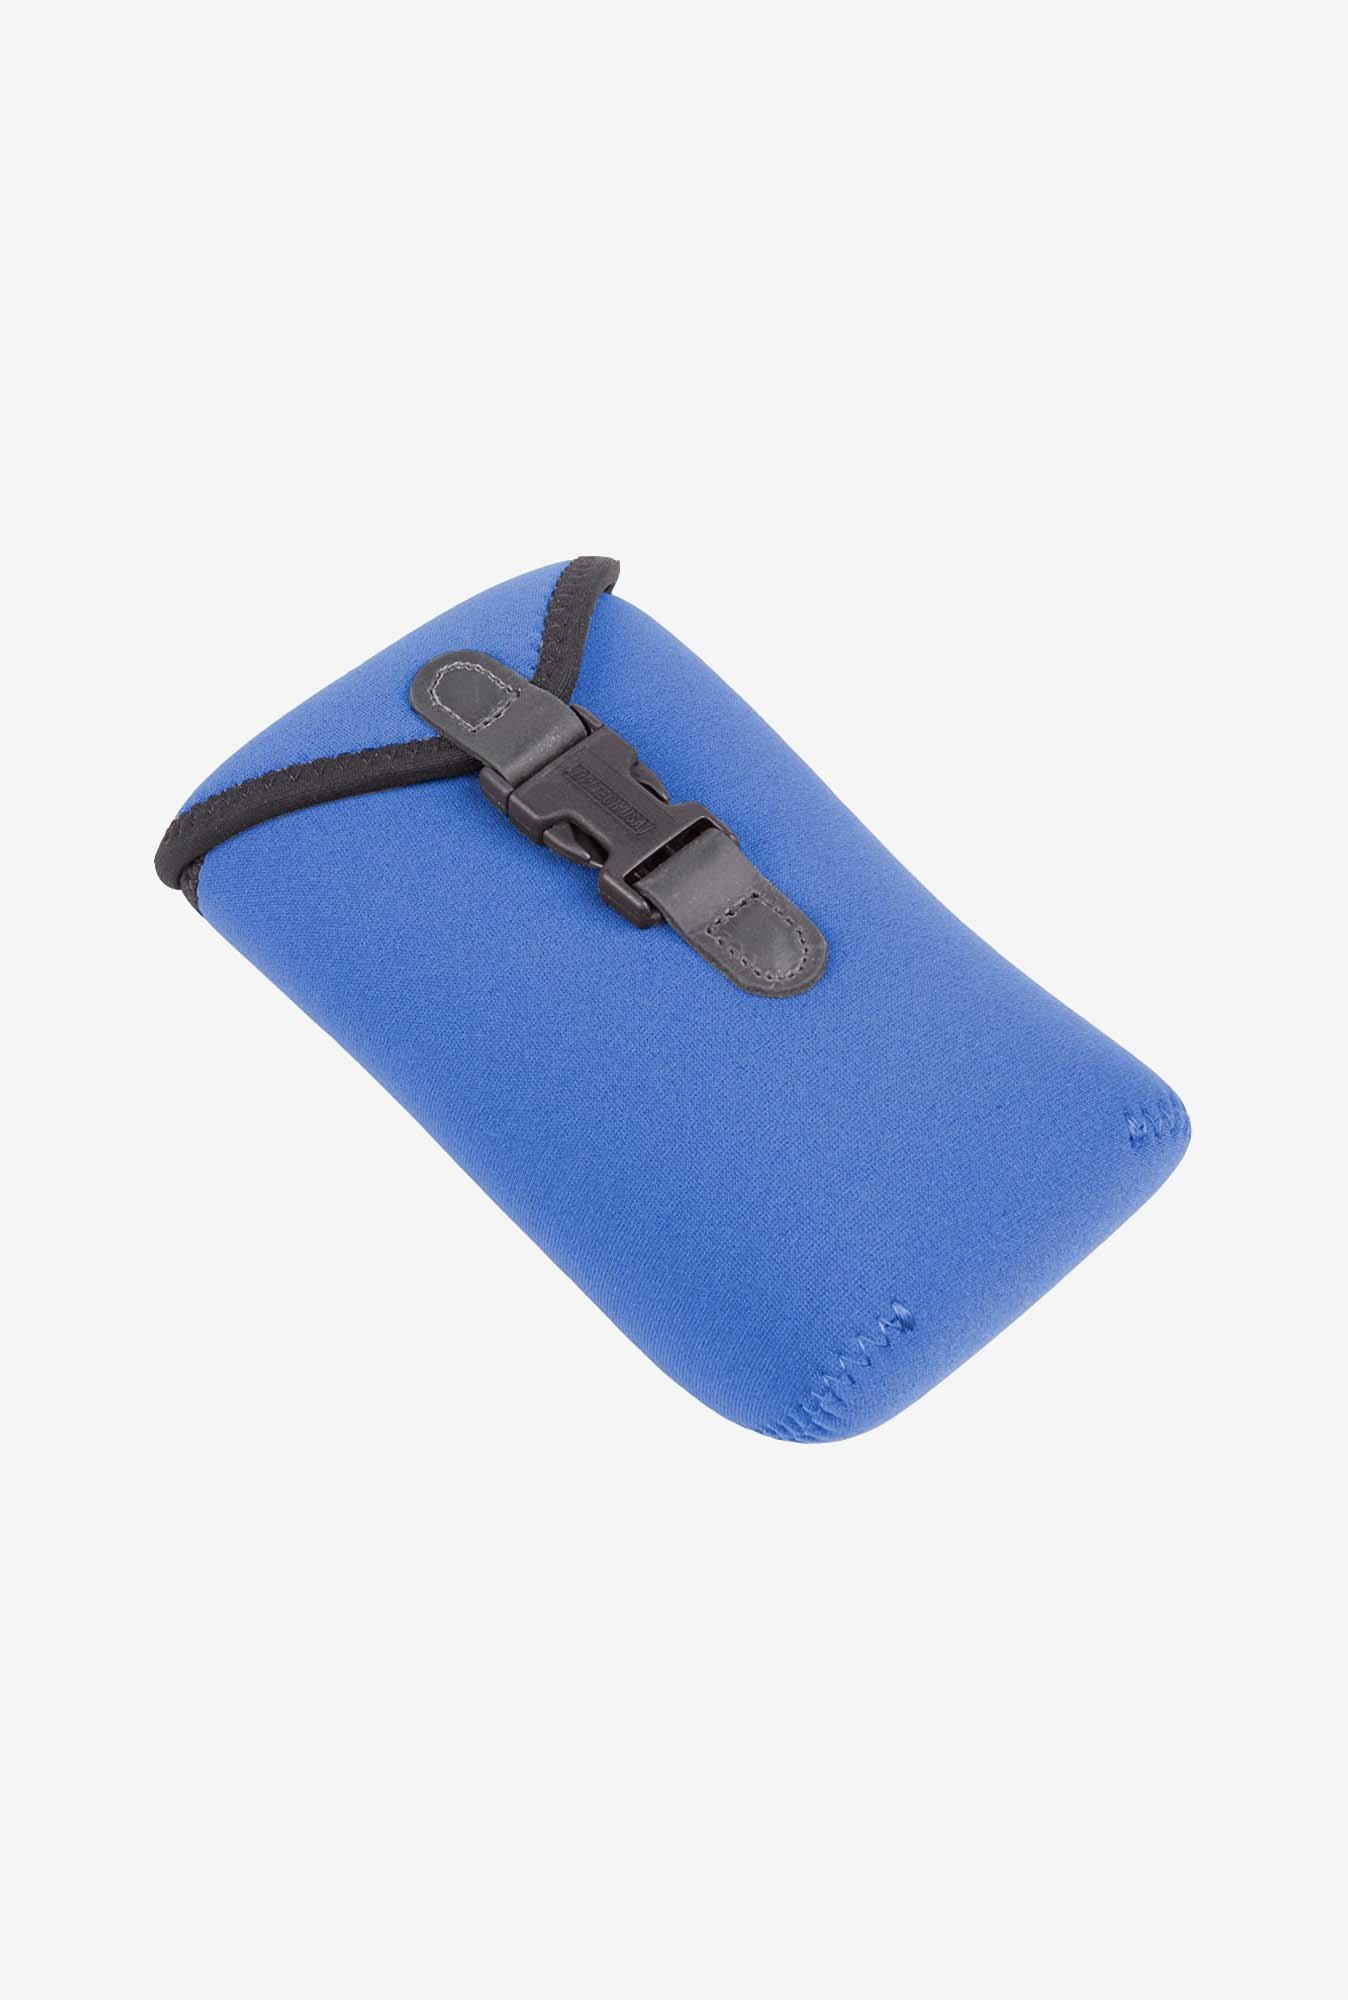 Op/Tech Usa 6404134 Soft Pouch Large (Royal)